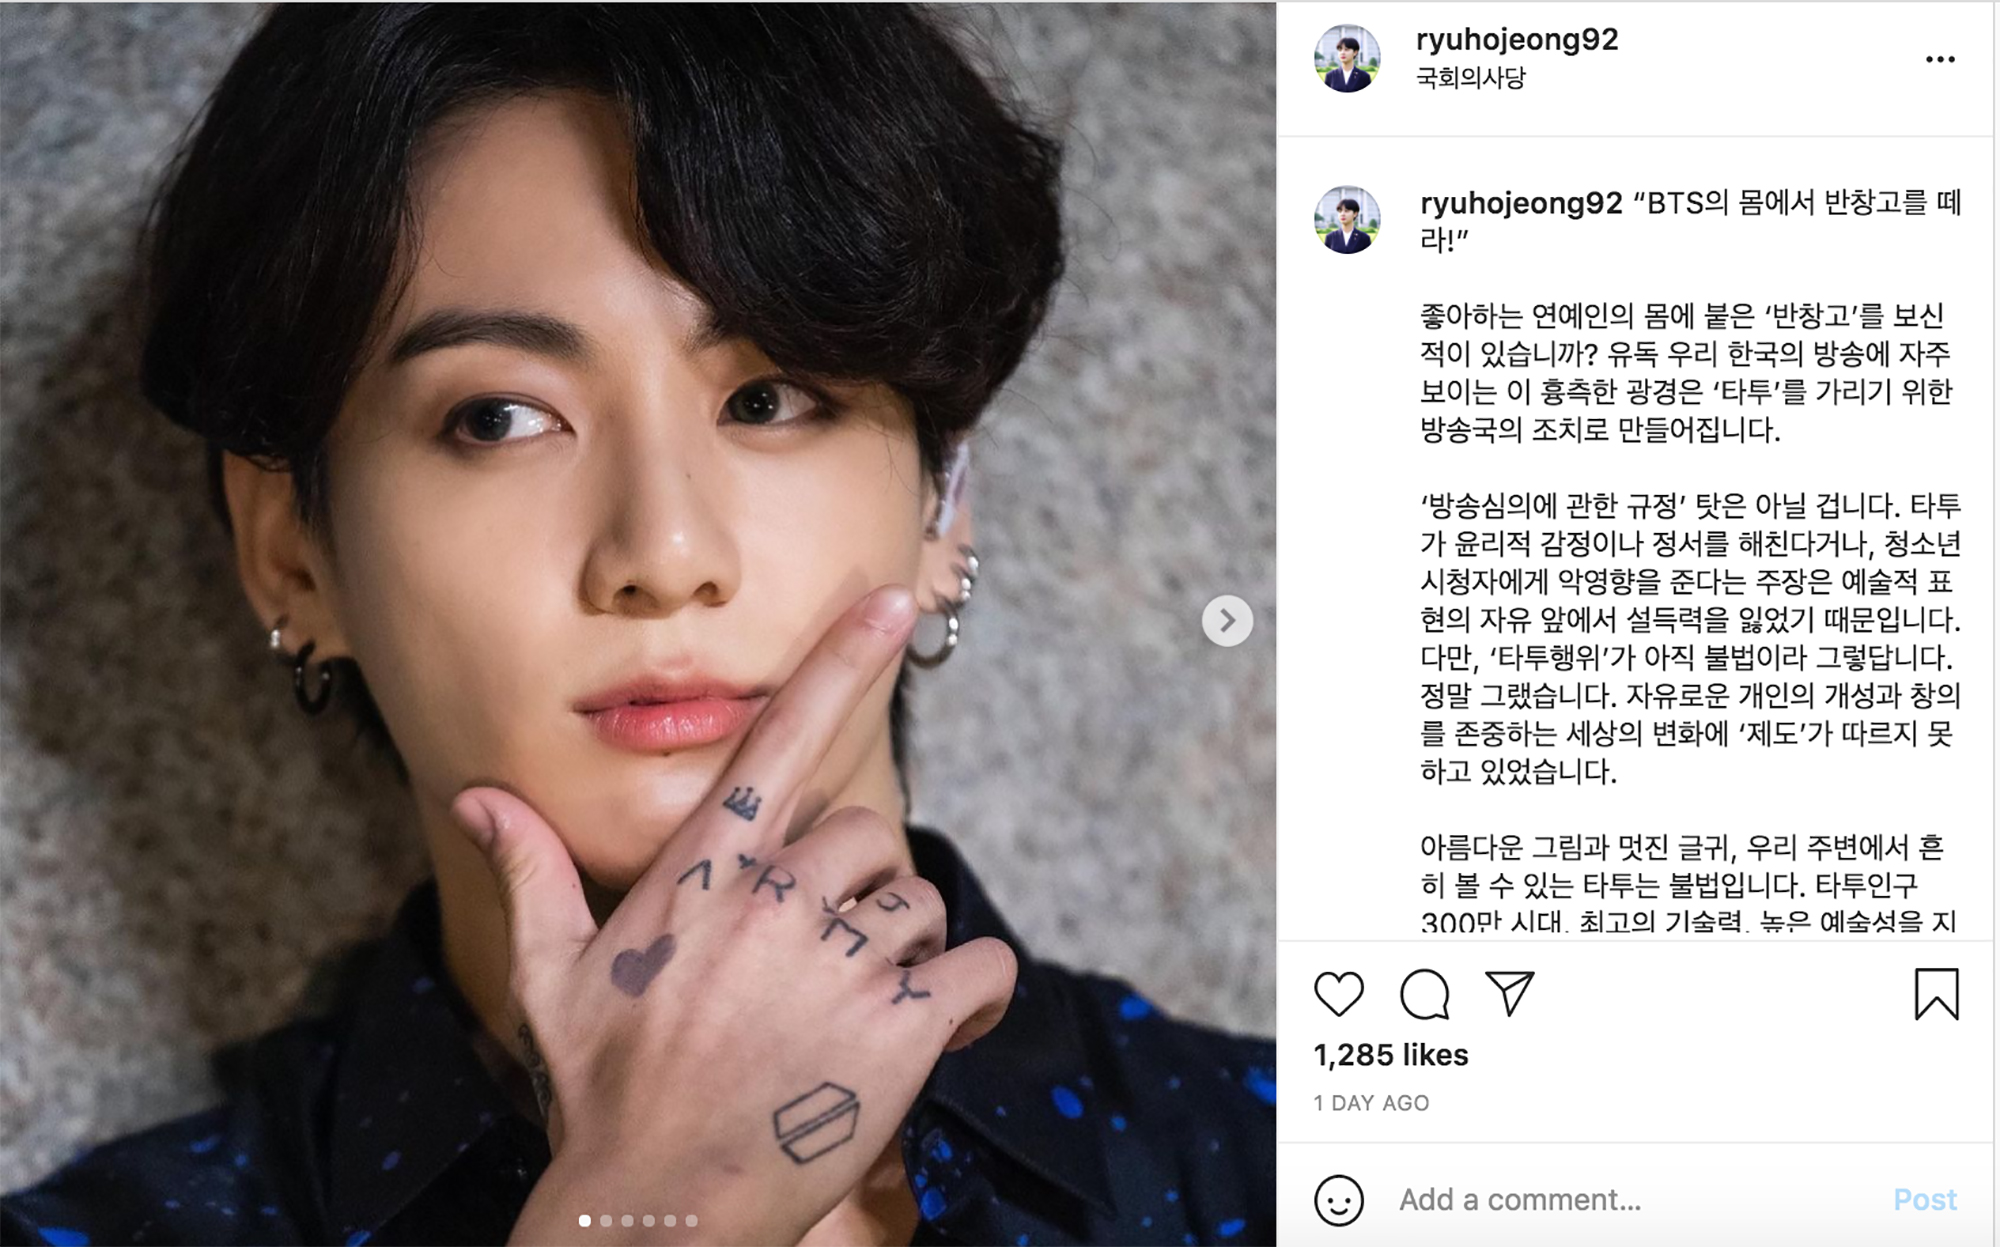 South Korean politician criticised for using image of BTS' Jungkook to promote new bill